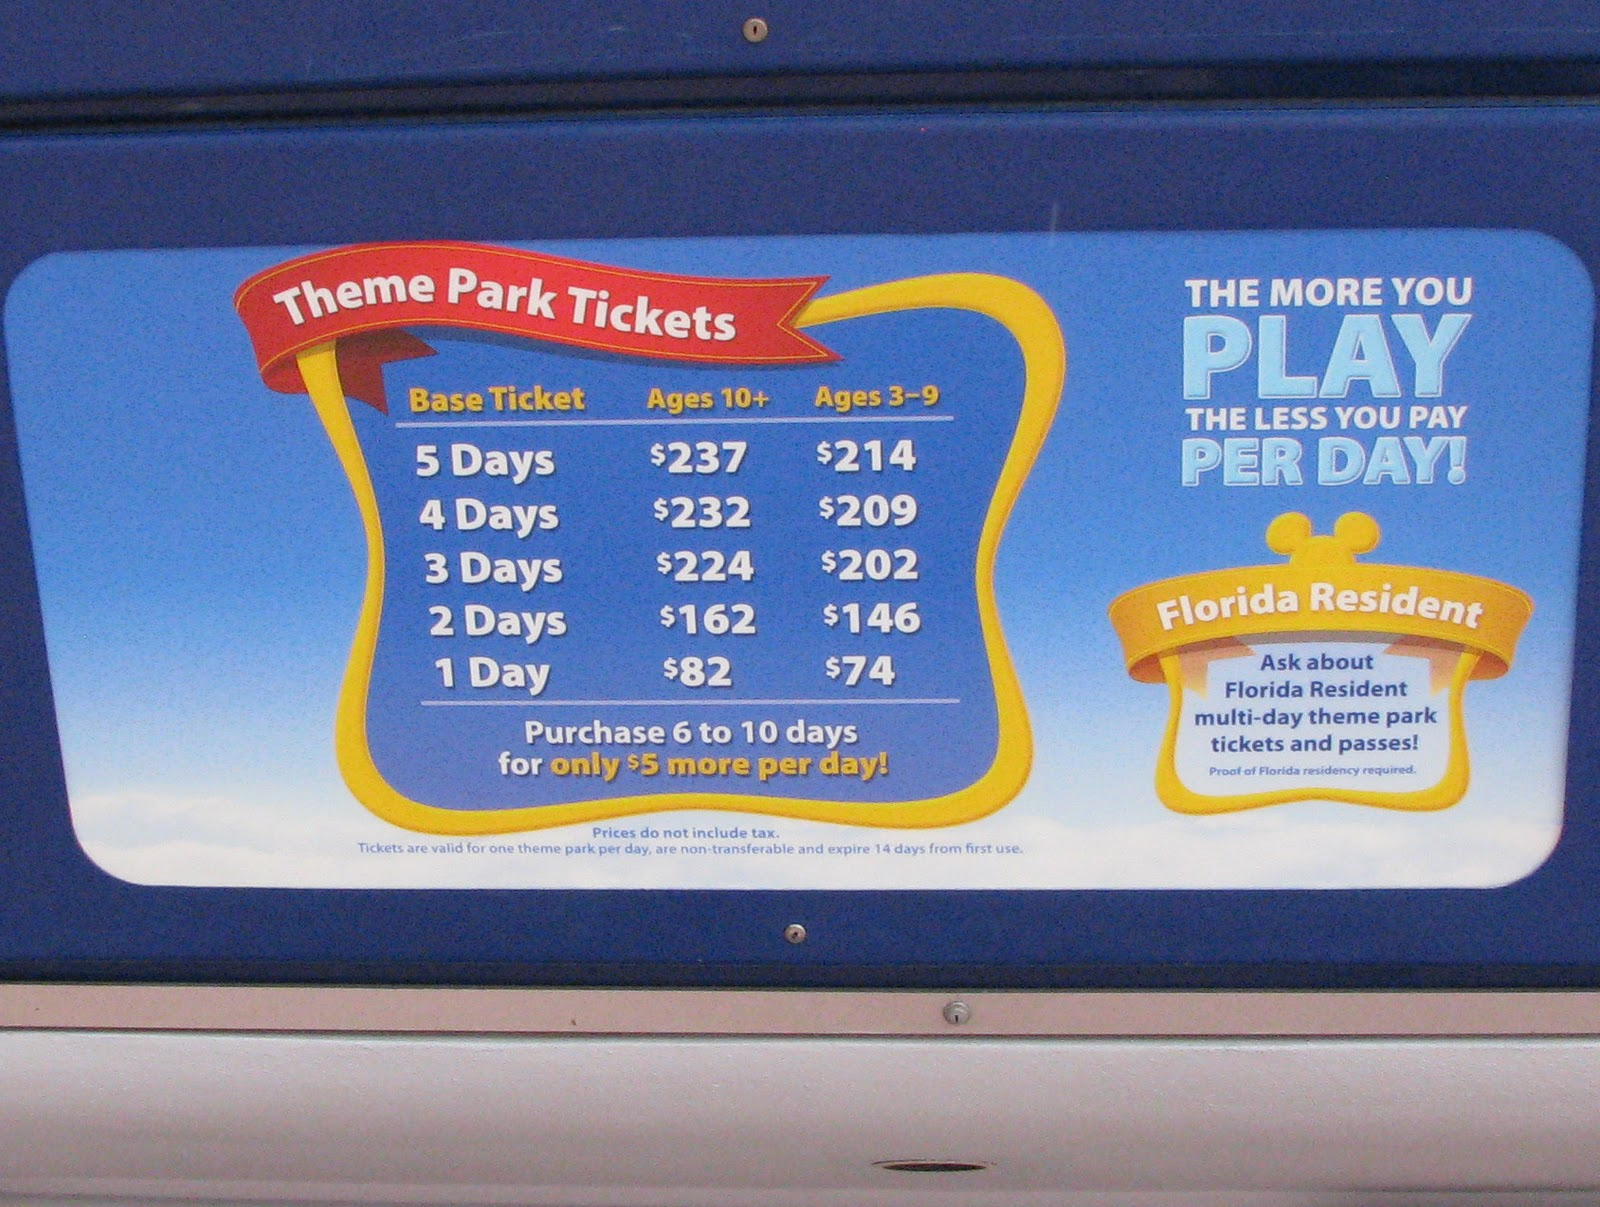 disney's theme park tickets Walt Disney himself once said,